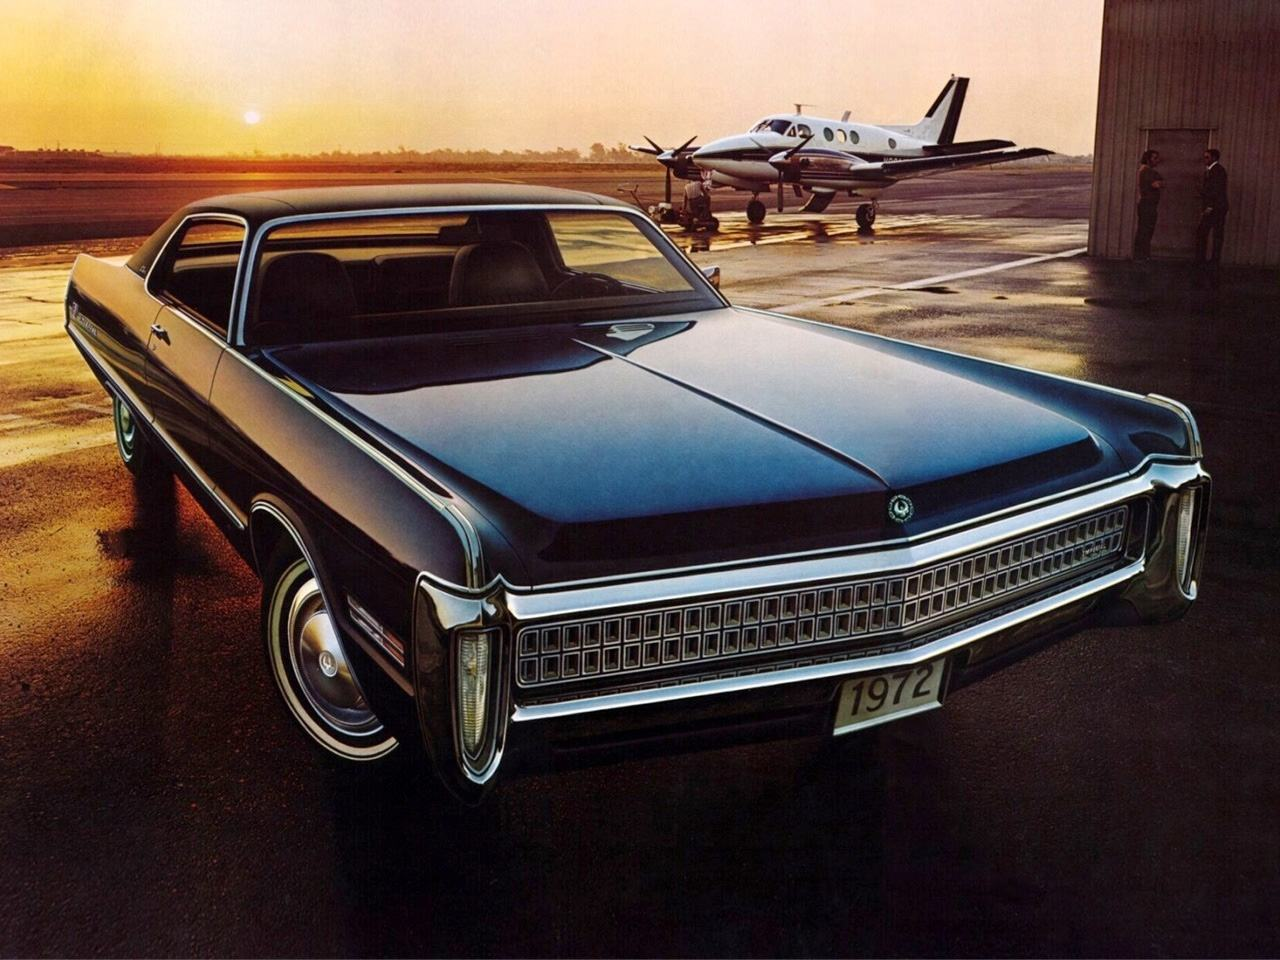 Curbside Clic: 1972 Cadillac Coupe DeVille – A Beginning As Well